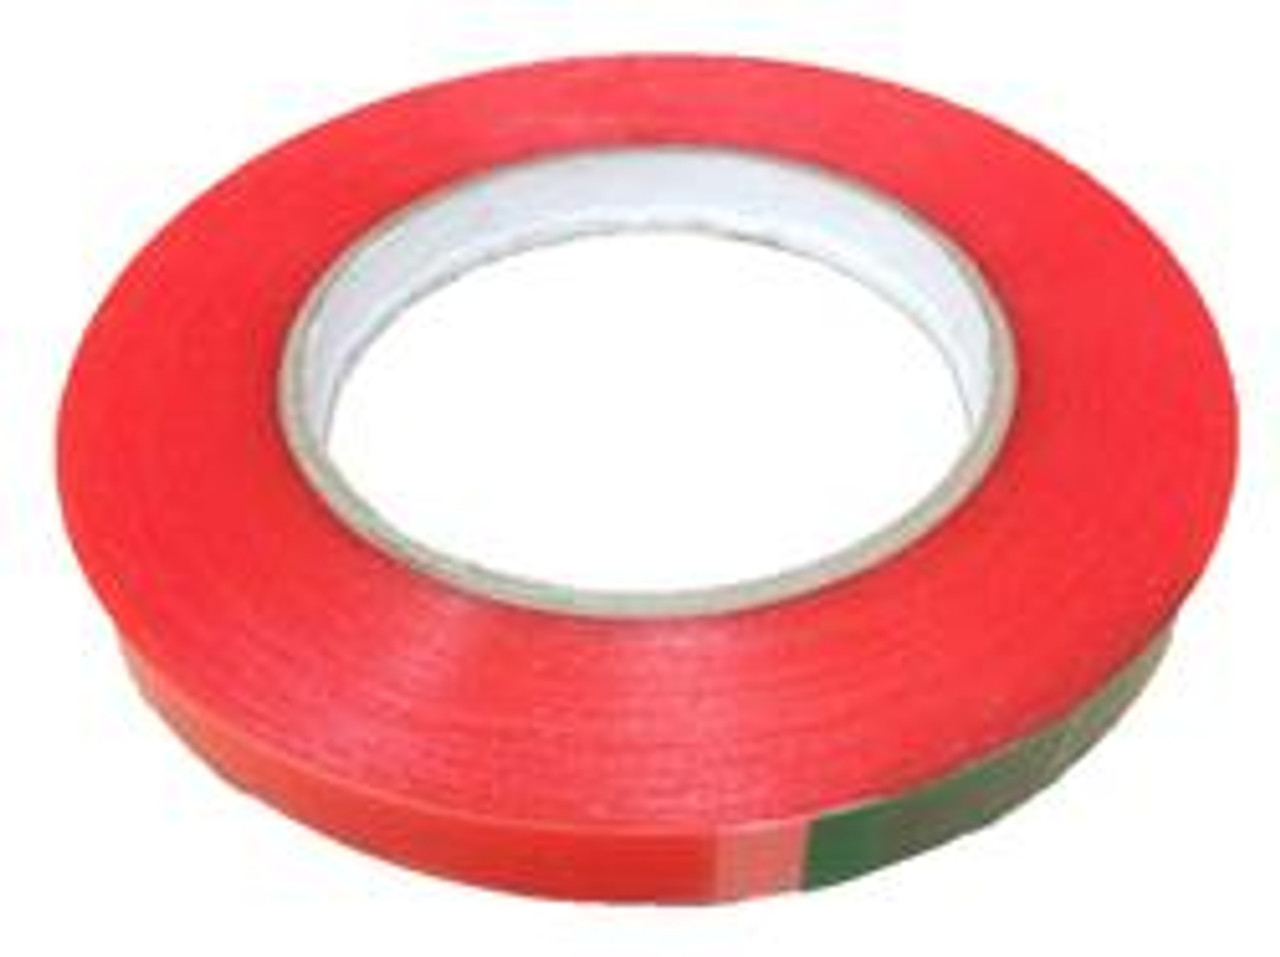 "Red 2 Sided Film Tape 3/8""x36yds (48 Roll Case / $13.99 Per Roll)"